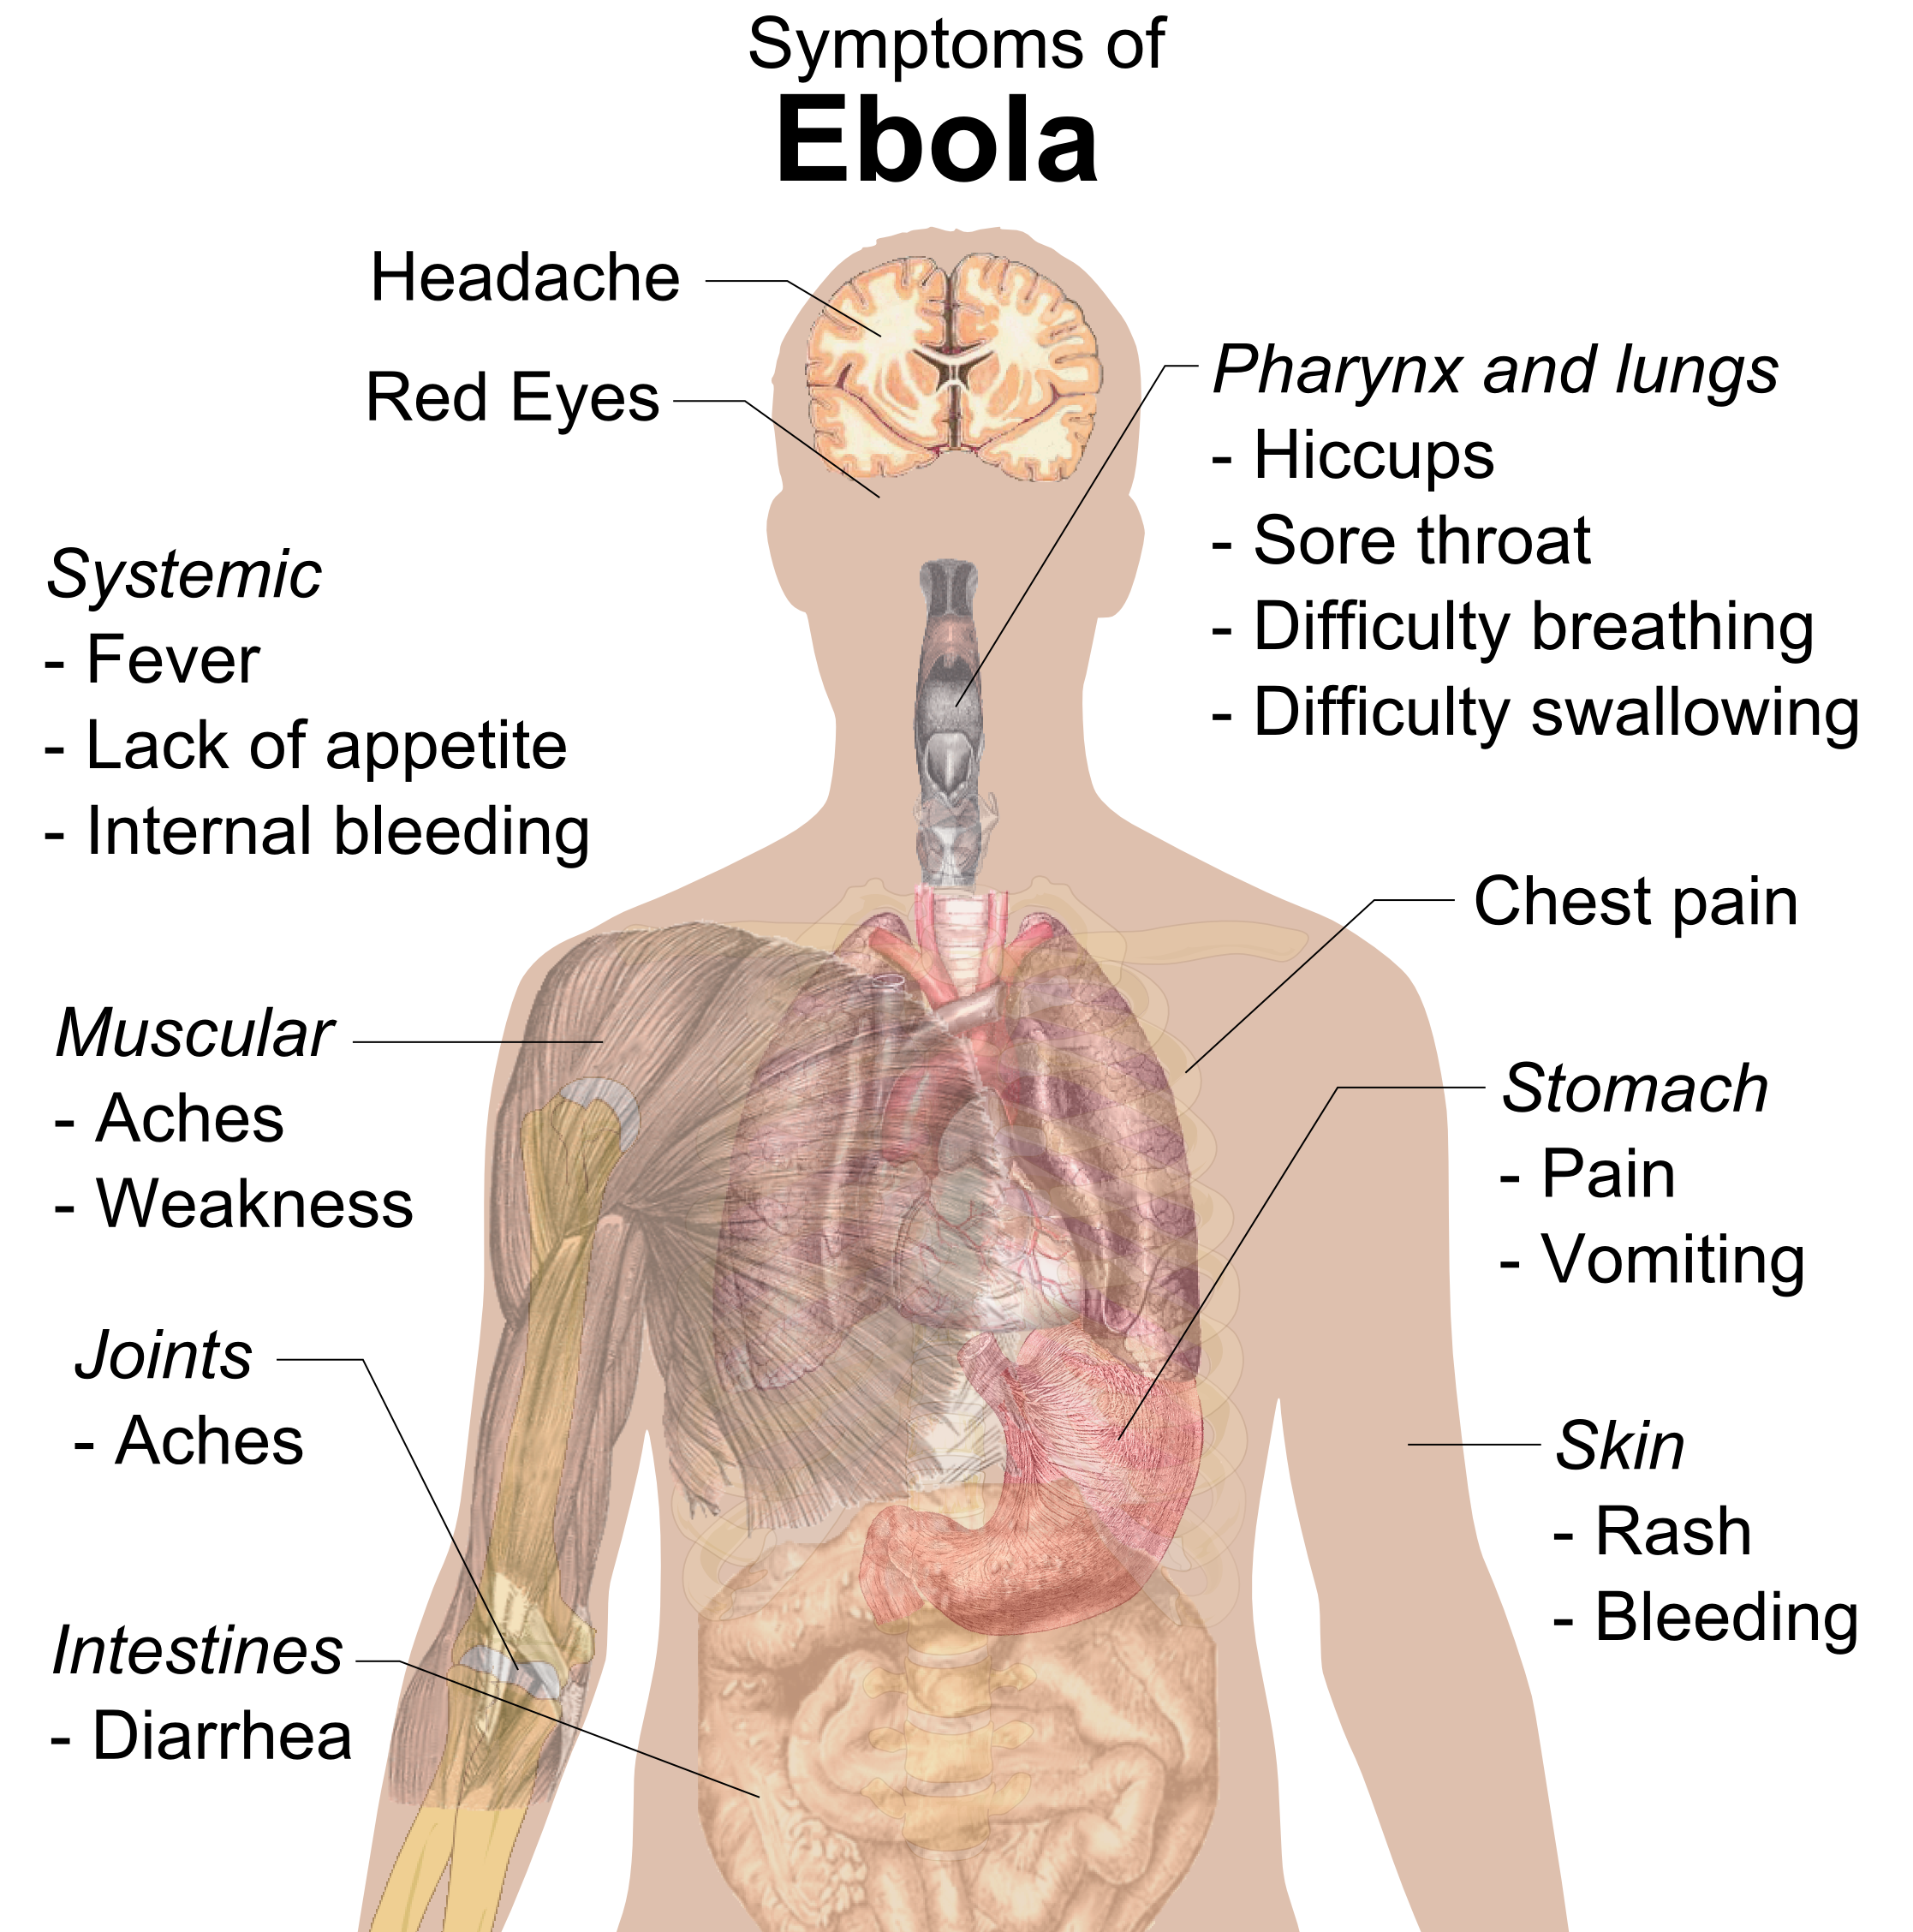 http://upload.wikimedia.org/wikipedia/commons/4/4a/Symptoms_of_ebola.png